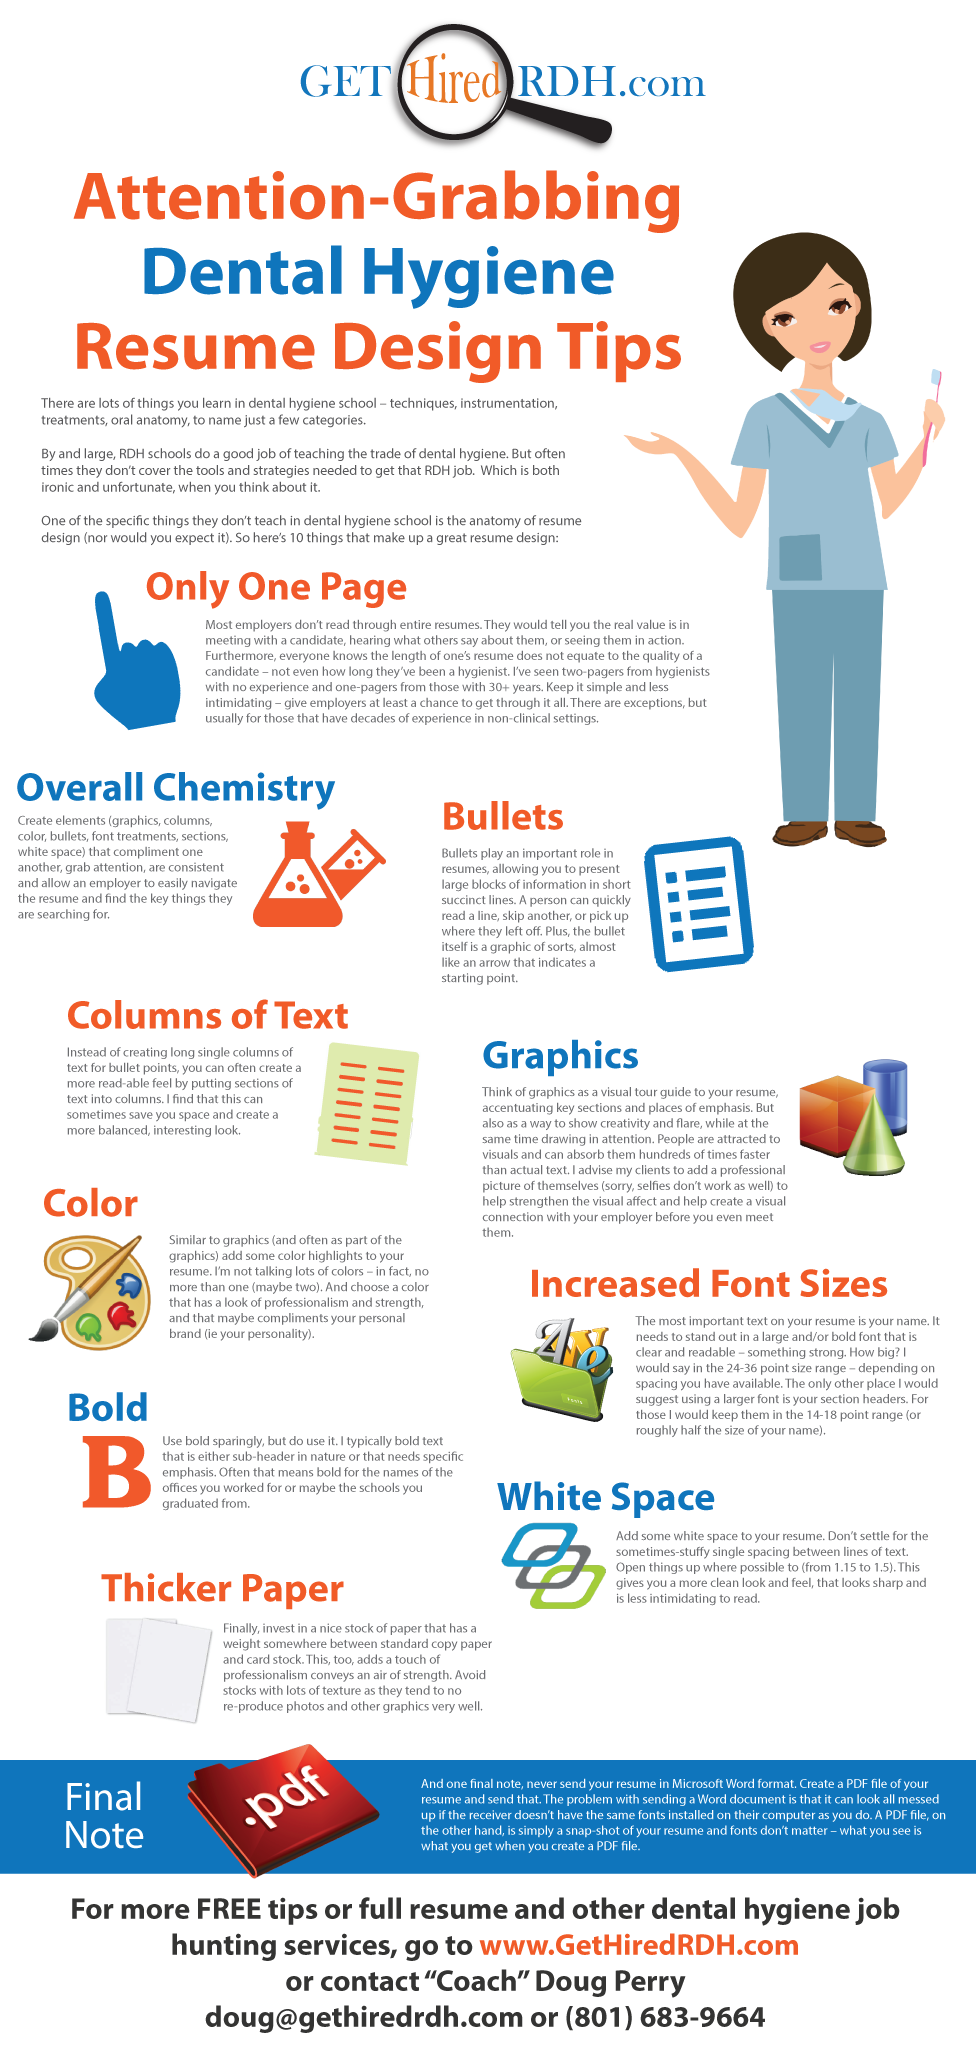 attention grabbing dental hygiene resume design tips attention grabbing dental hygiene resume design tips gethiredrdh com